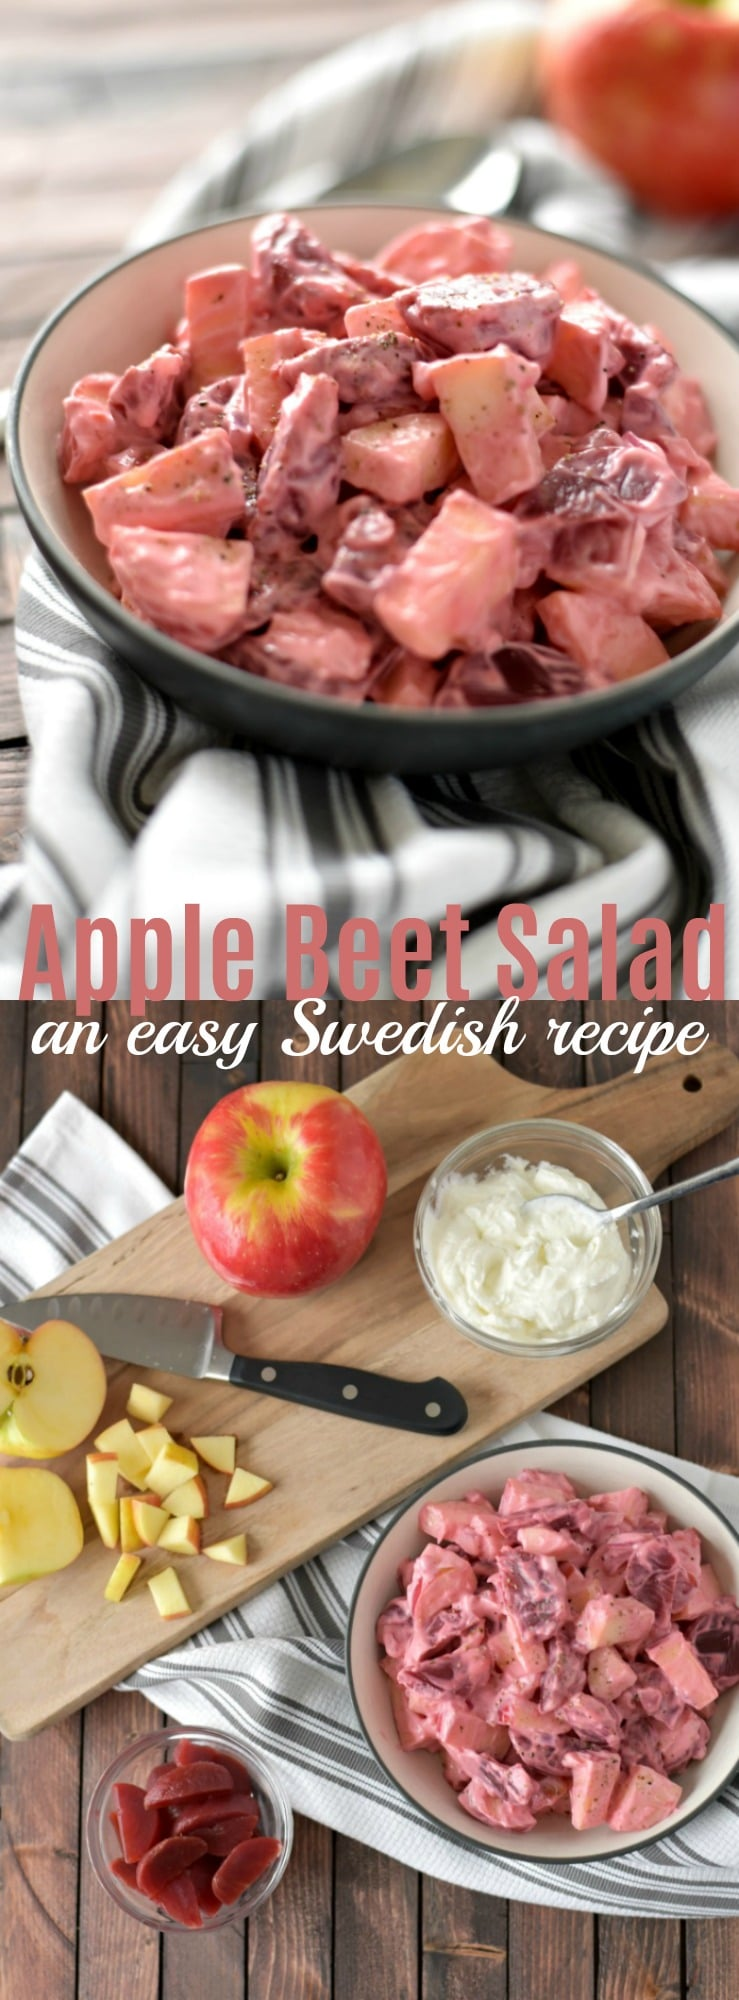 This Swedish Beet and Apple Salad is an easy & quick side dish with a lovely pink color. You only need a few ingredients & a few minutes to mix it together.